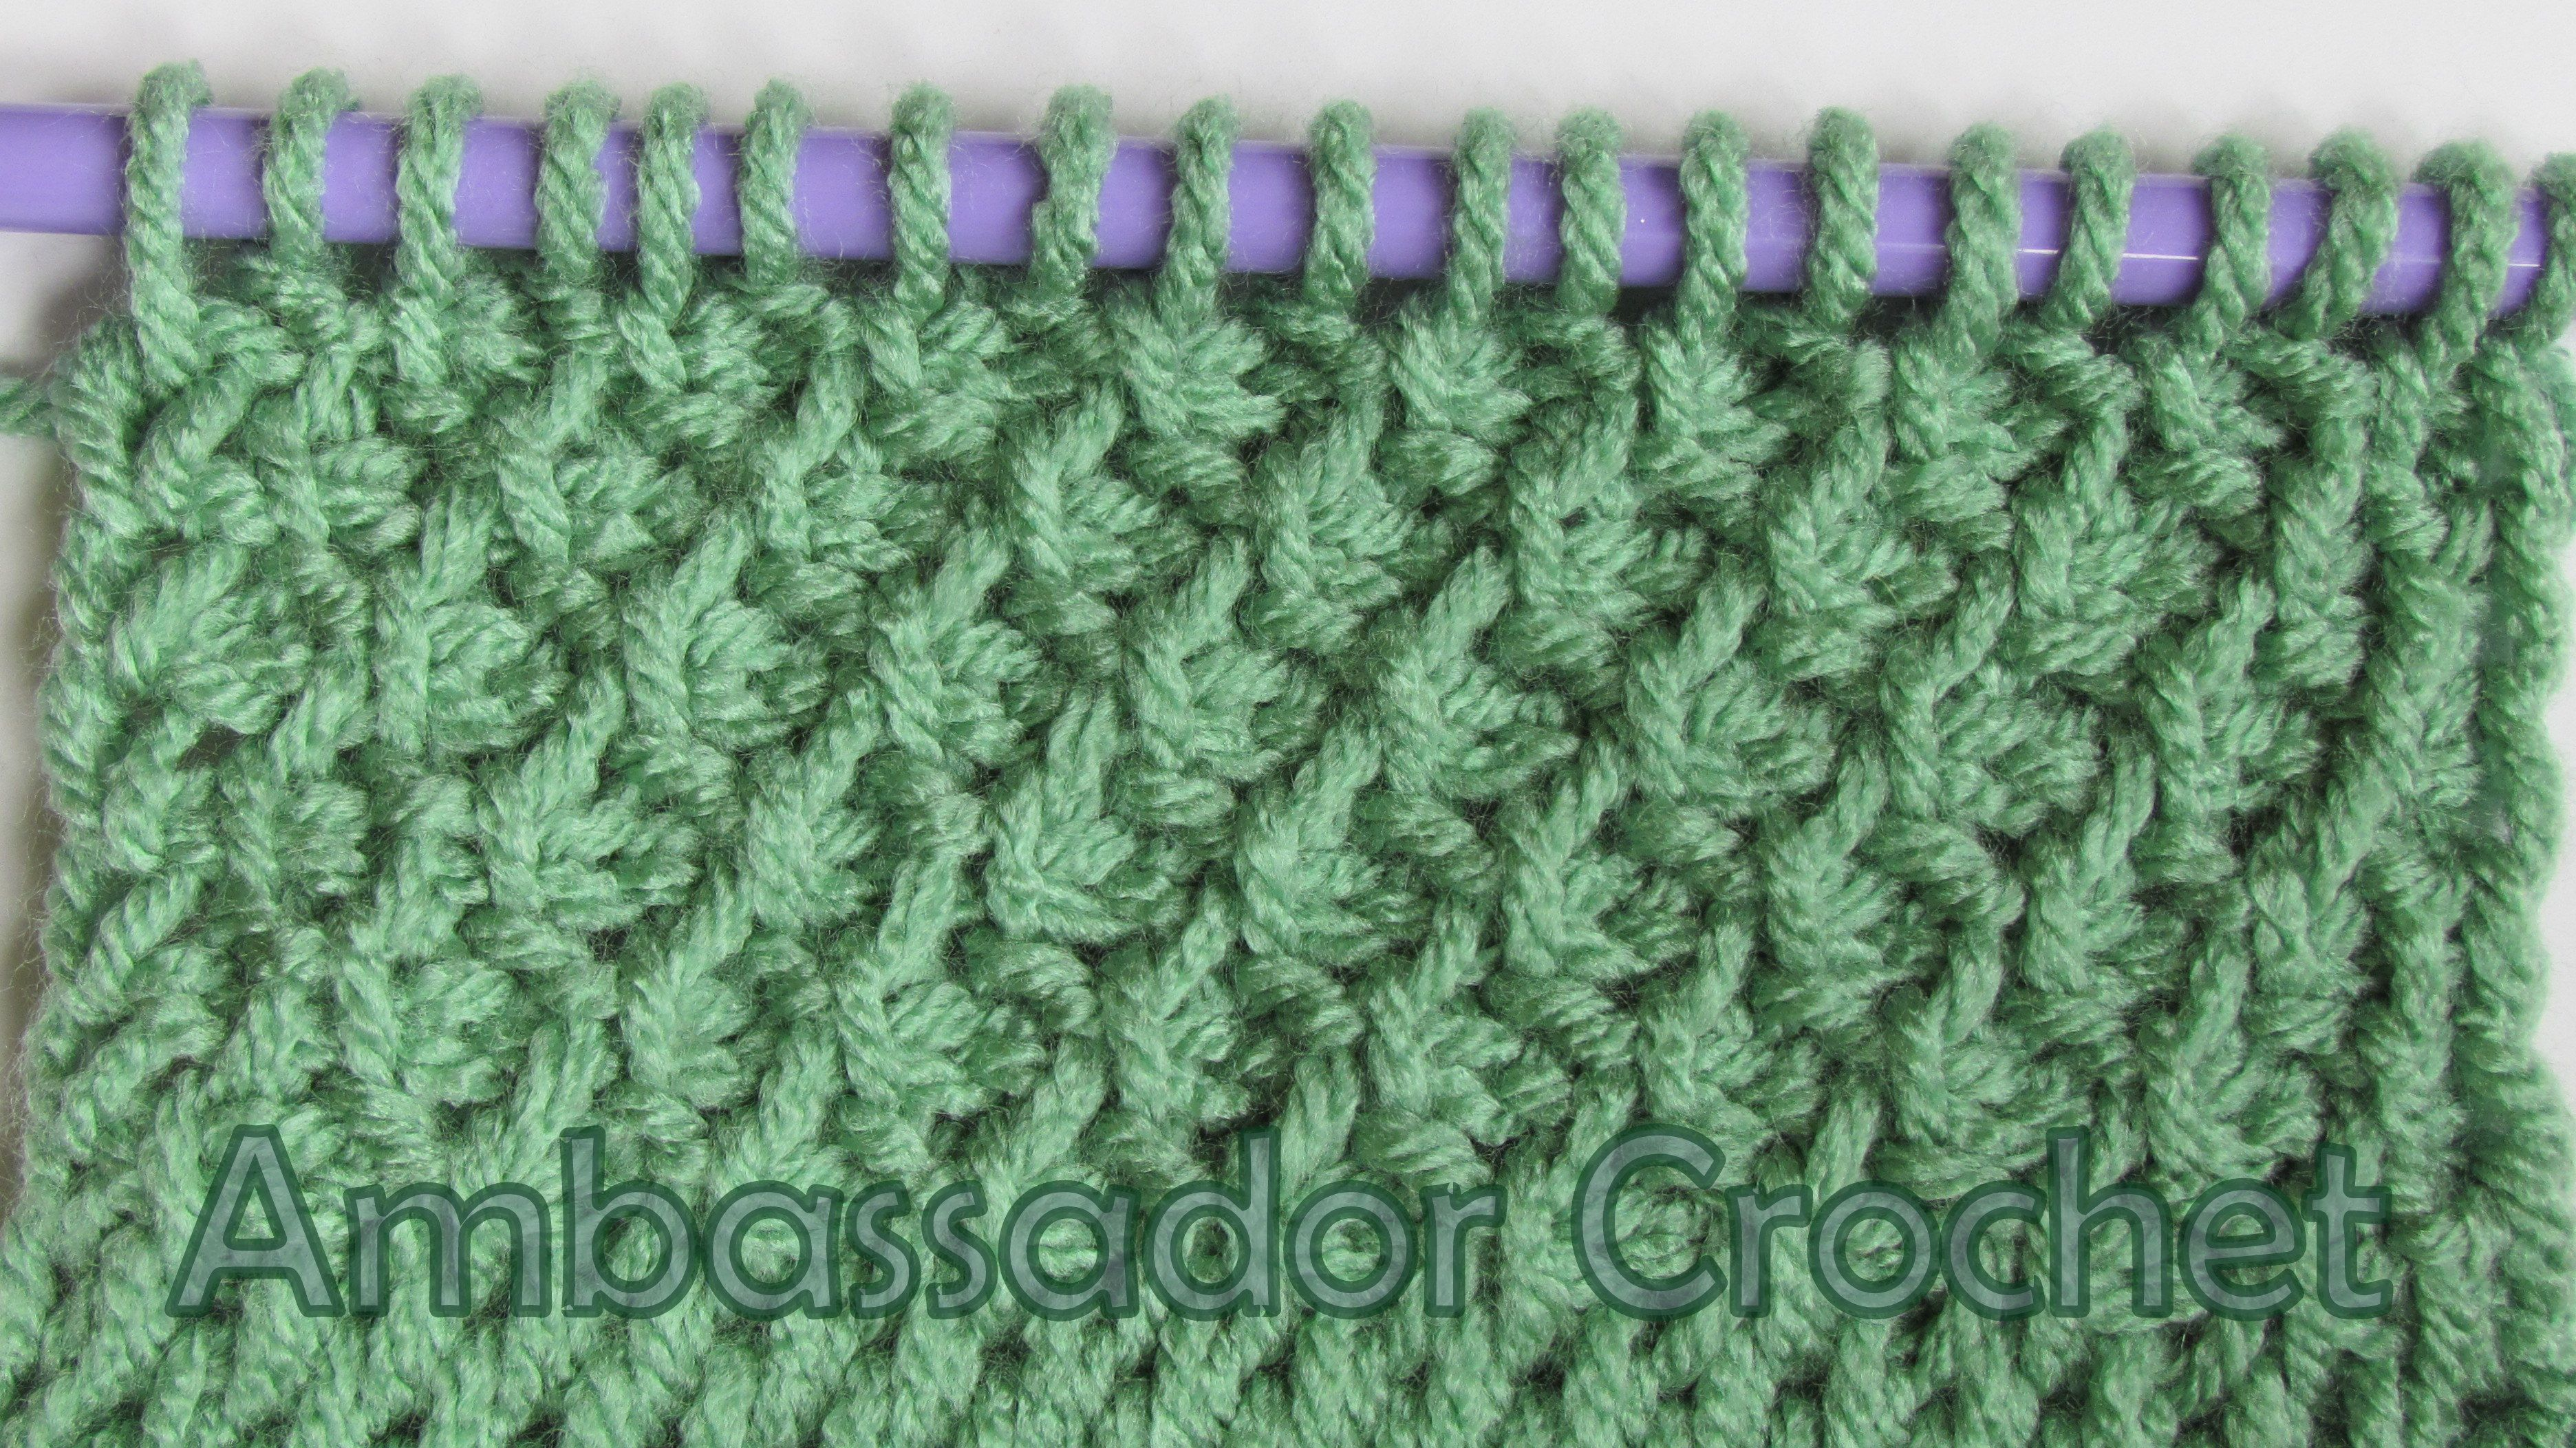 tunisian honeycomb stitch tutorial | Tunisian Crochet | Pinterest ...